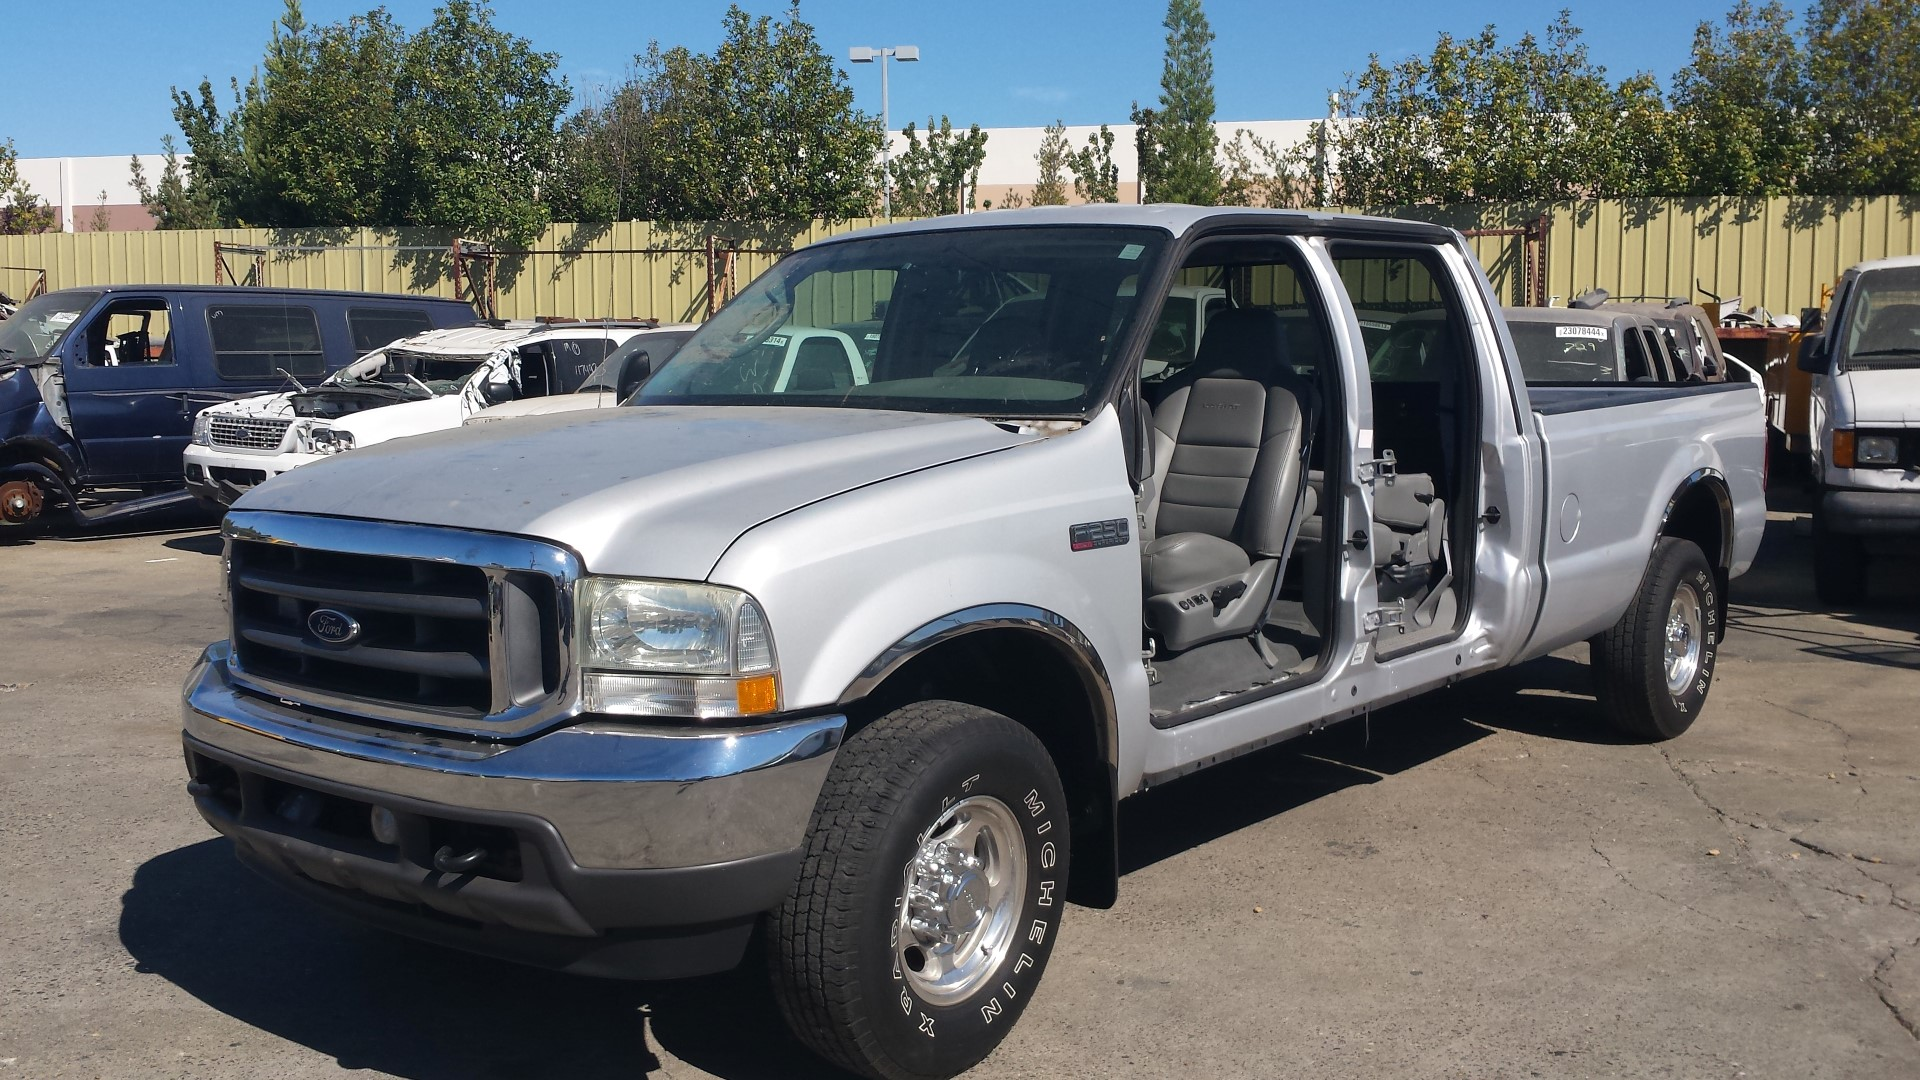 used parts 2004 ford f250 lariat 6 0l v8 5r110w torqshift. Black Bedroom Furniture Sets. Home Design Ideas